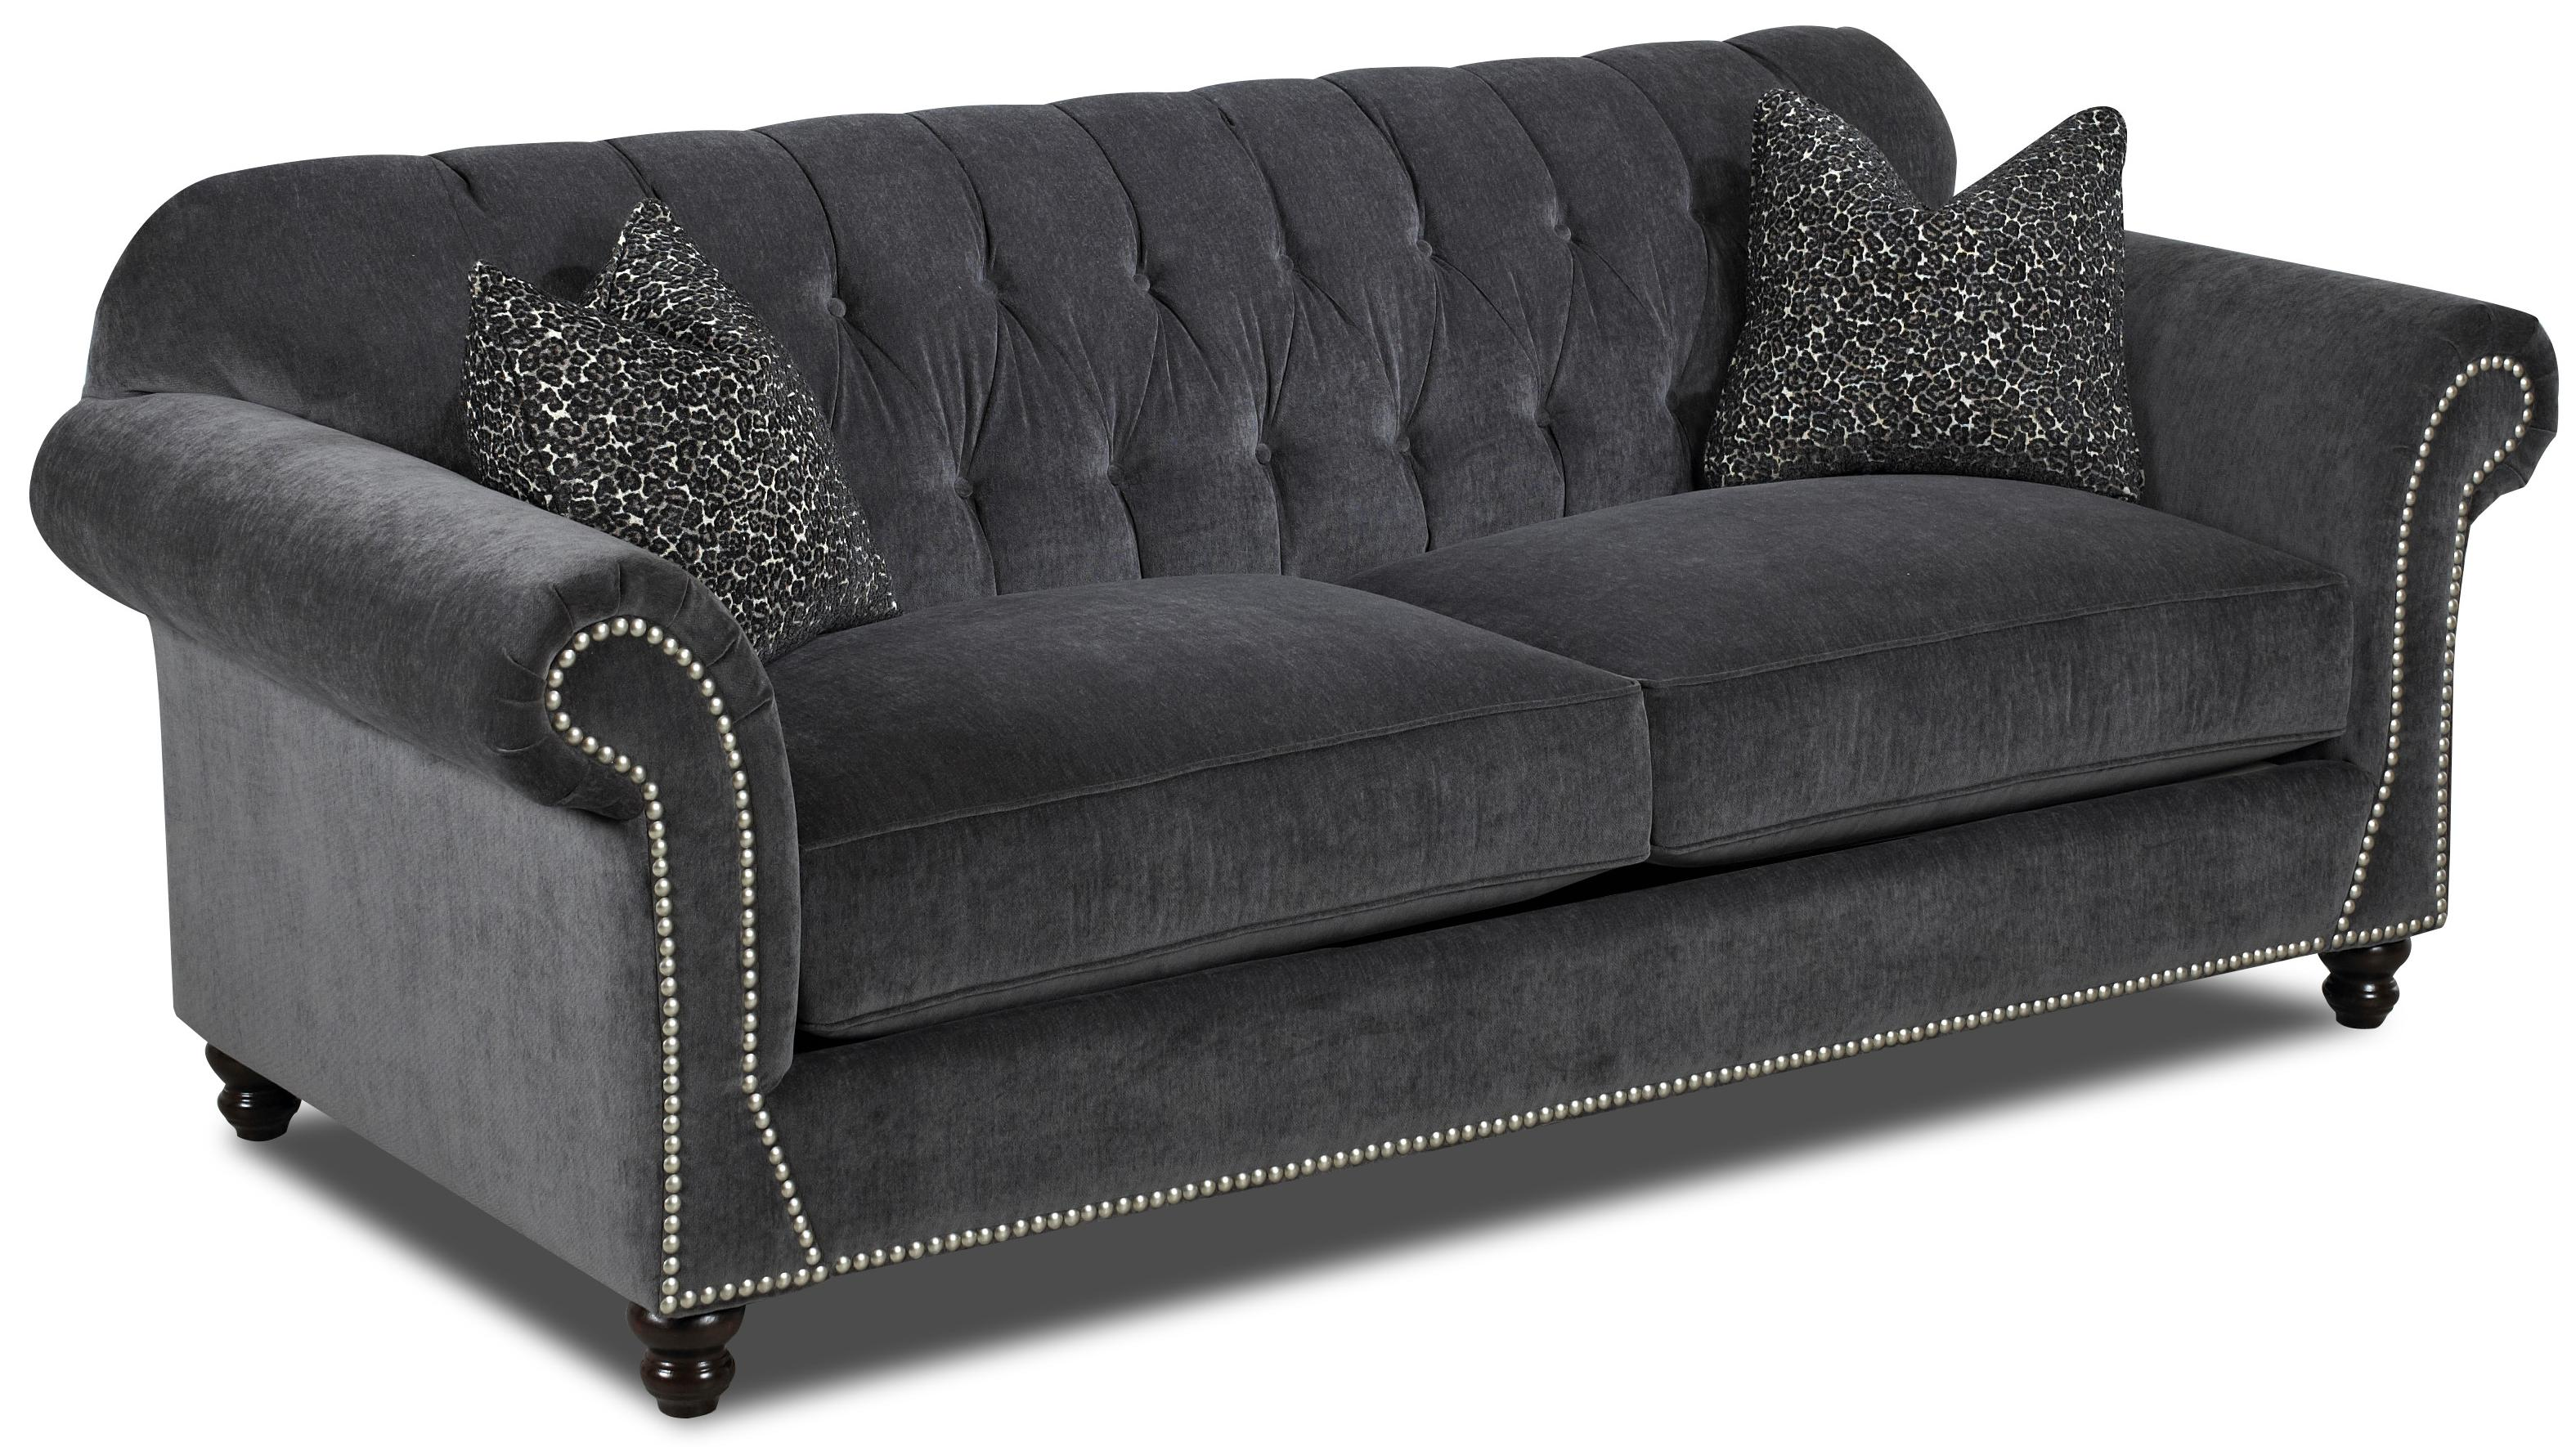 Traditional Sofa With Button Tufted Back Rolled Arms And Throw Pillows By Klaussner Wolf And